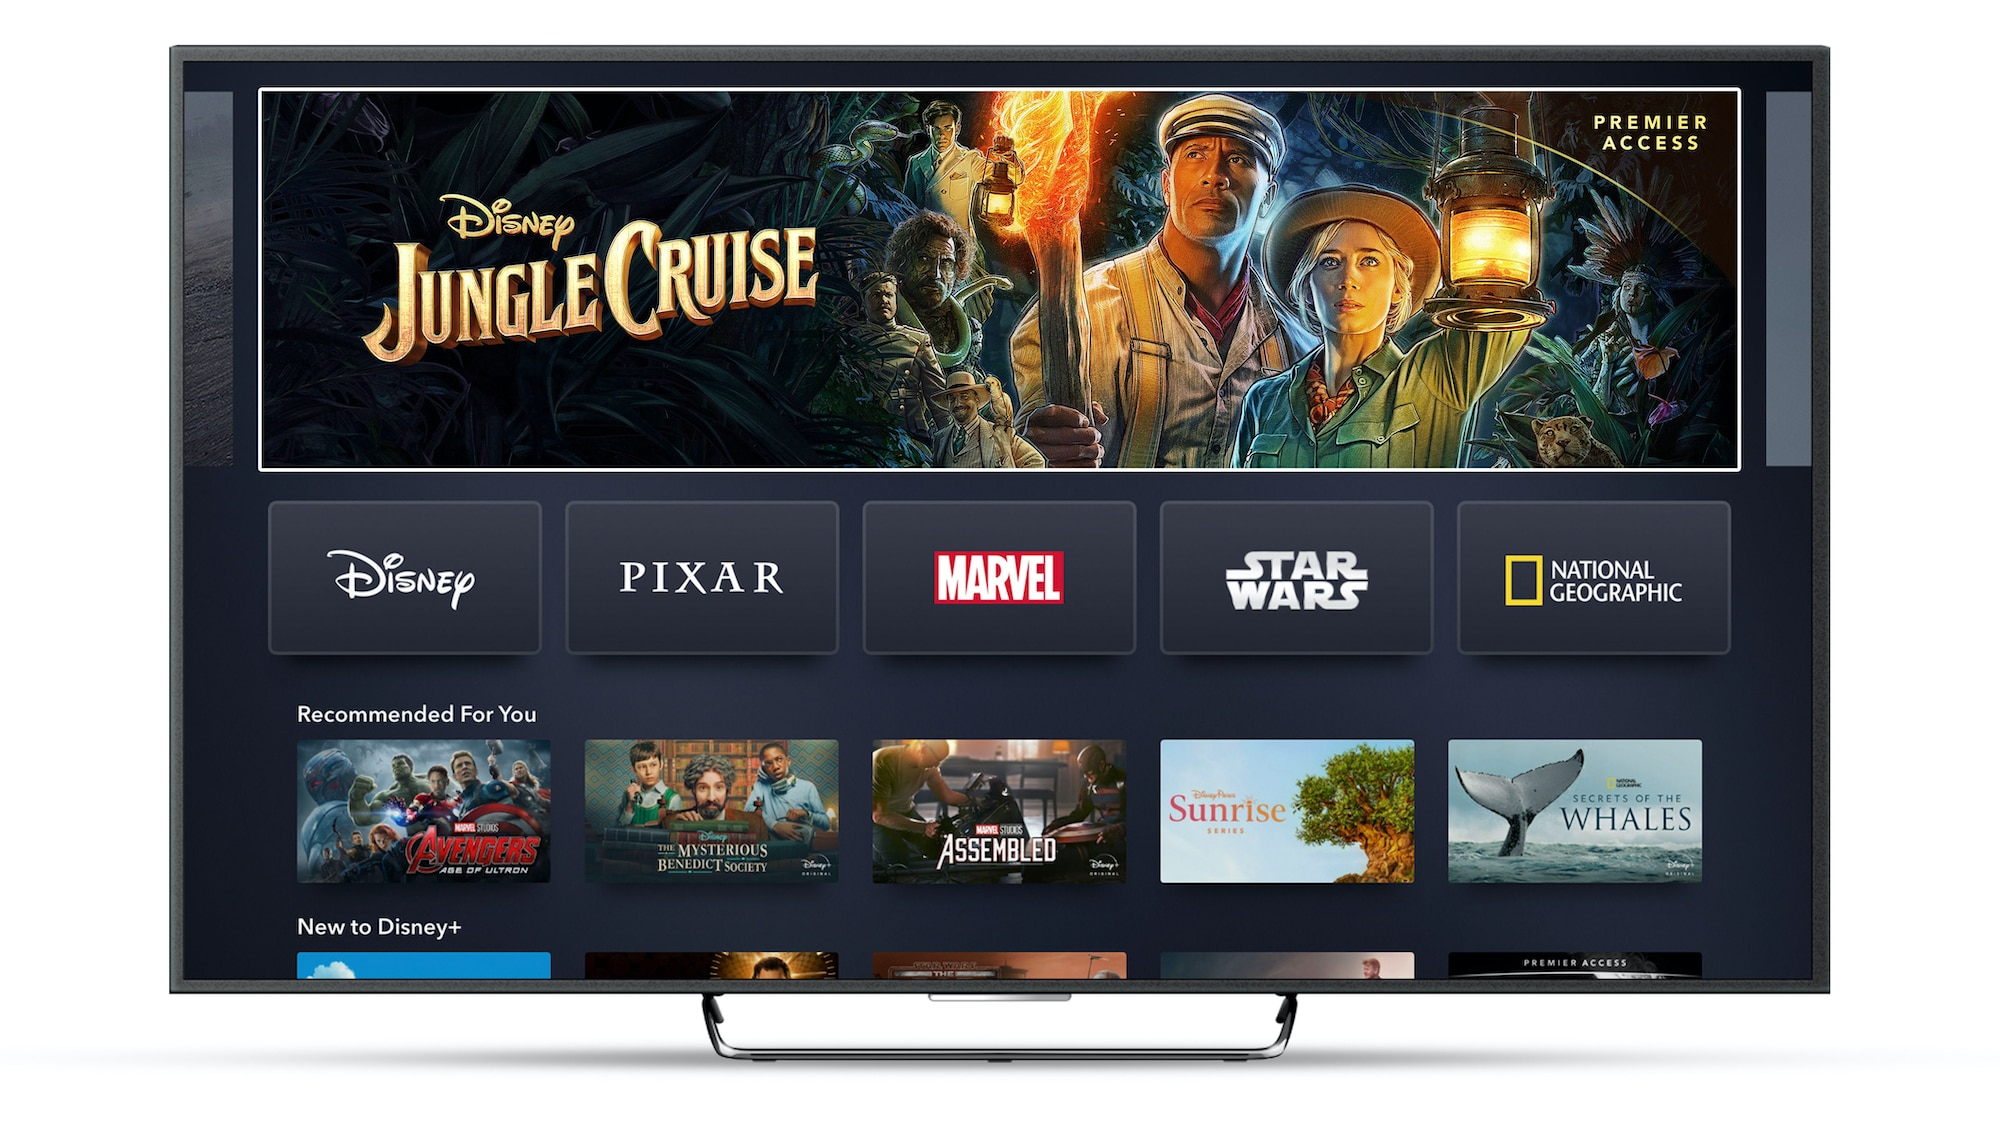 Disney+ App Home Page on Connected TV Device